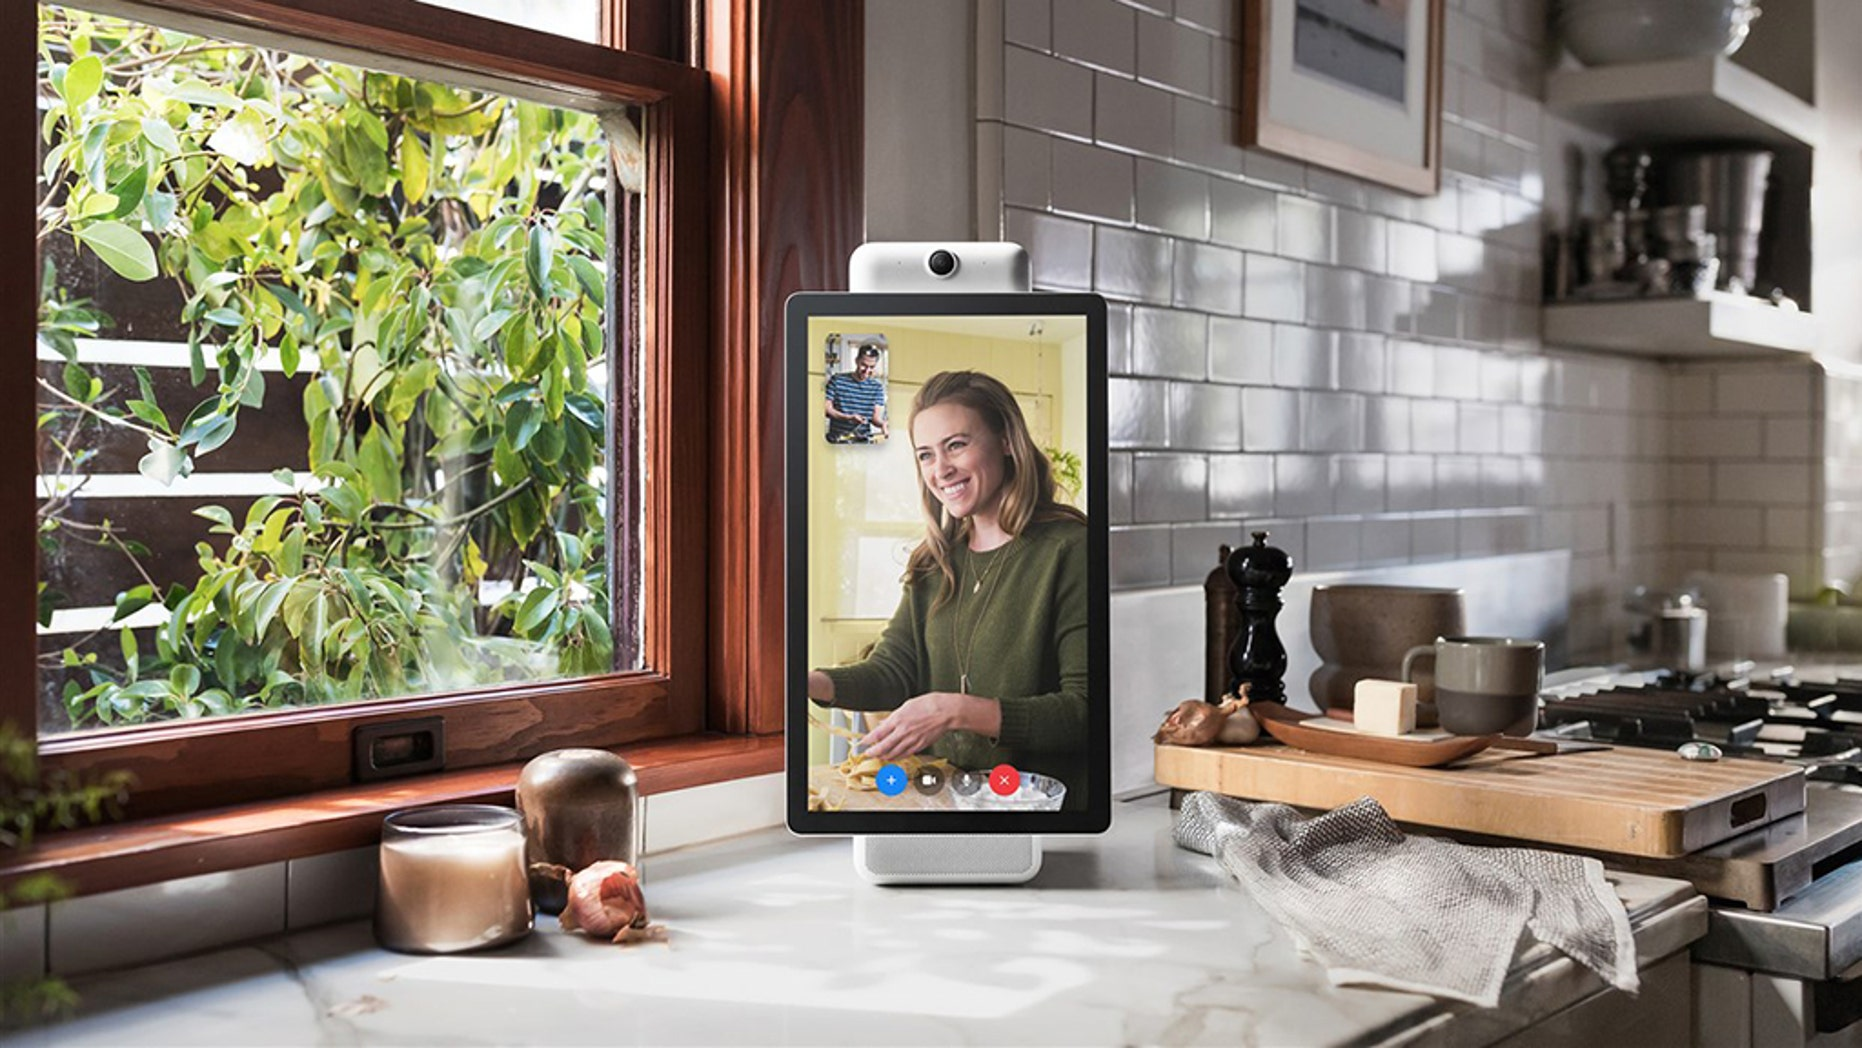 Facebook employees caught posting 5-star Portal reviews on Amazon